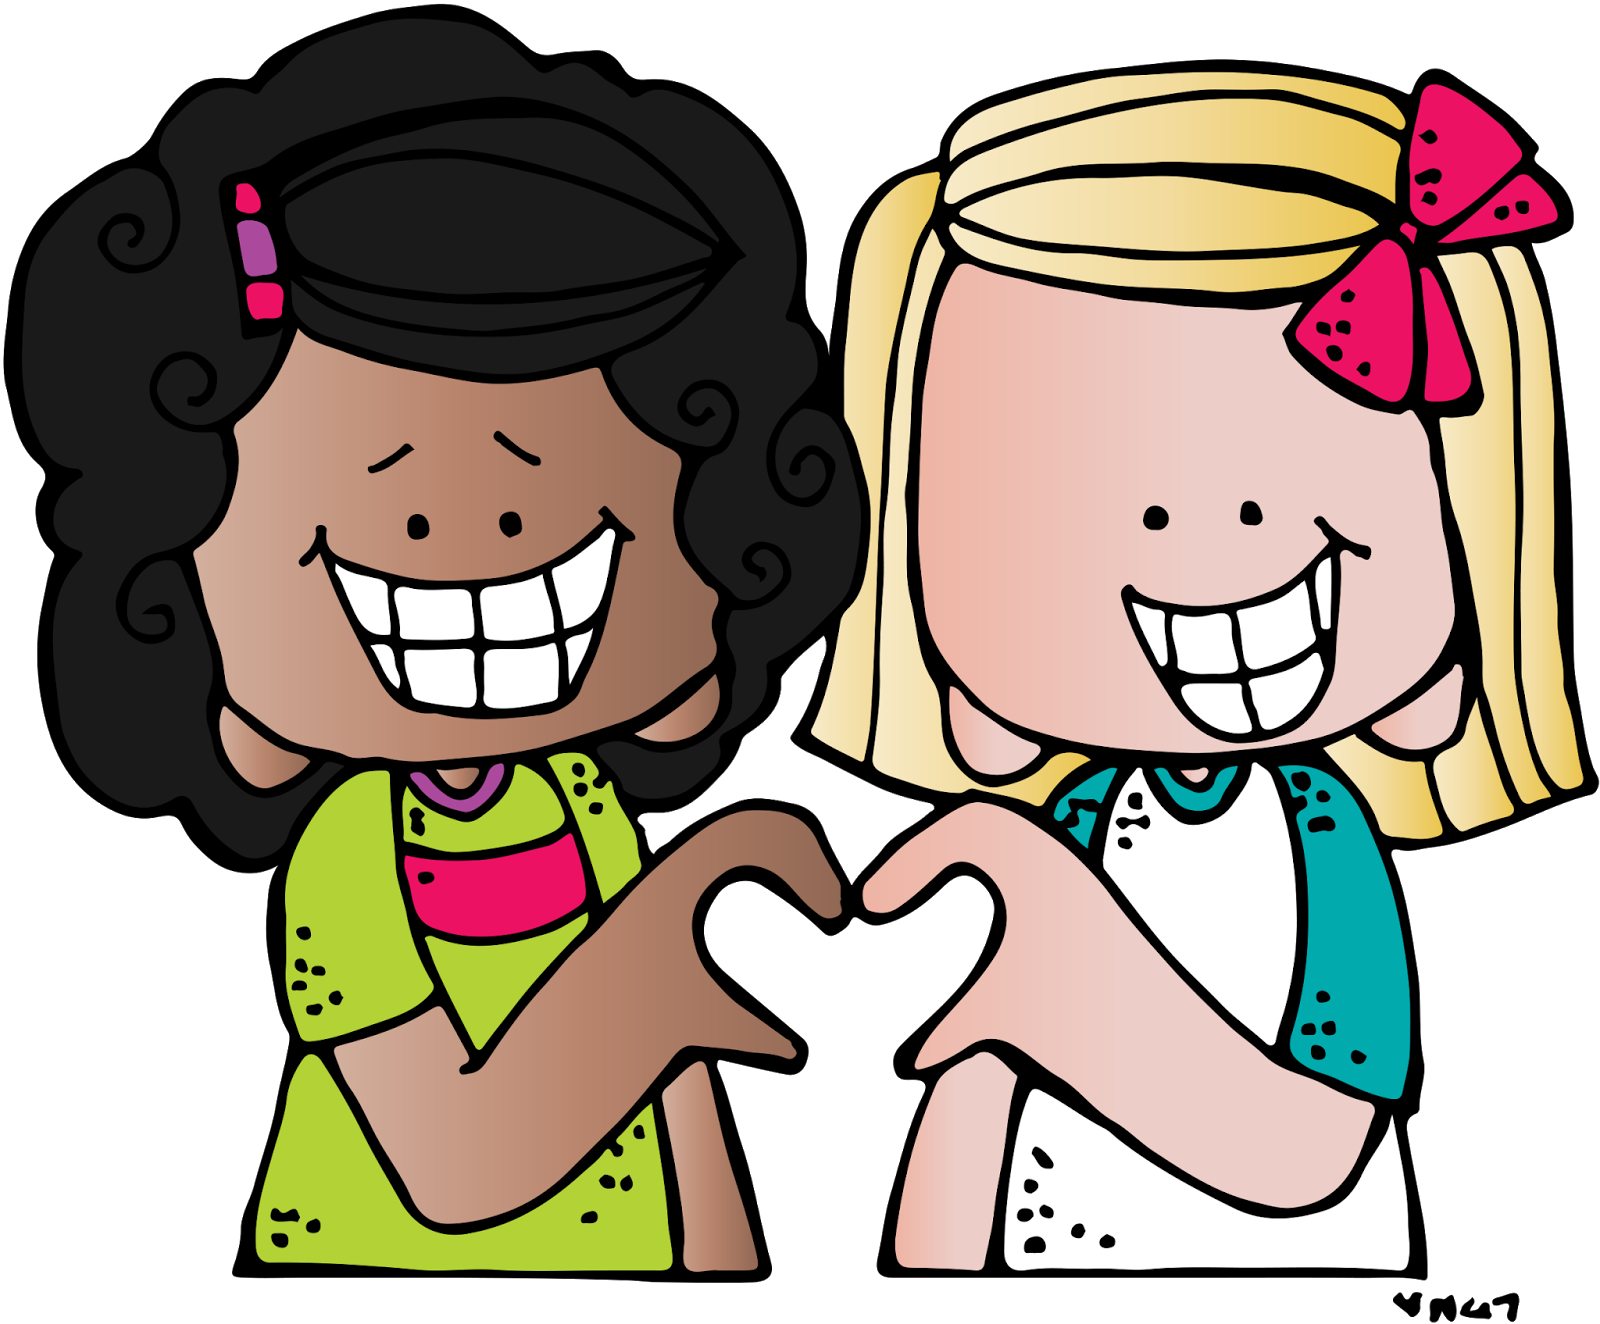 My heart is heavy. Friendship clipart peer group